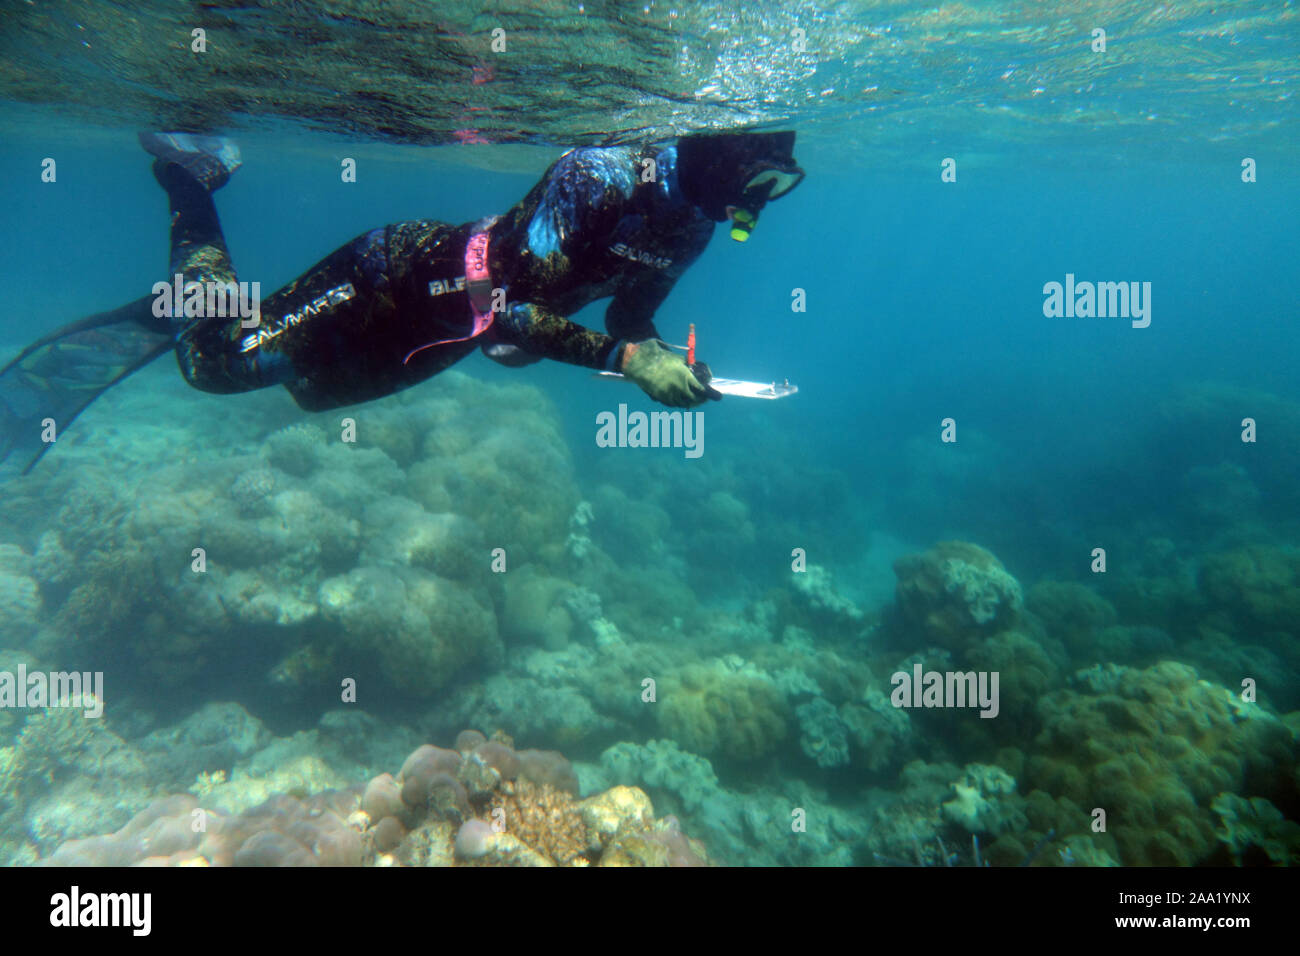 Snorkeller conducting underwater survey of coral health, Lizard Island, Great Barrier Reef, Queensland, Australia. No MR or PR Stock Photo